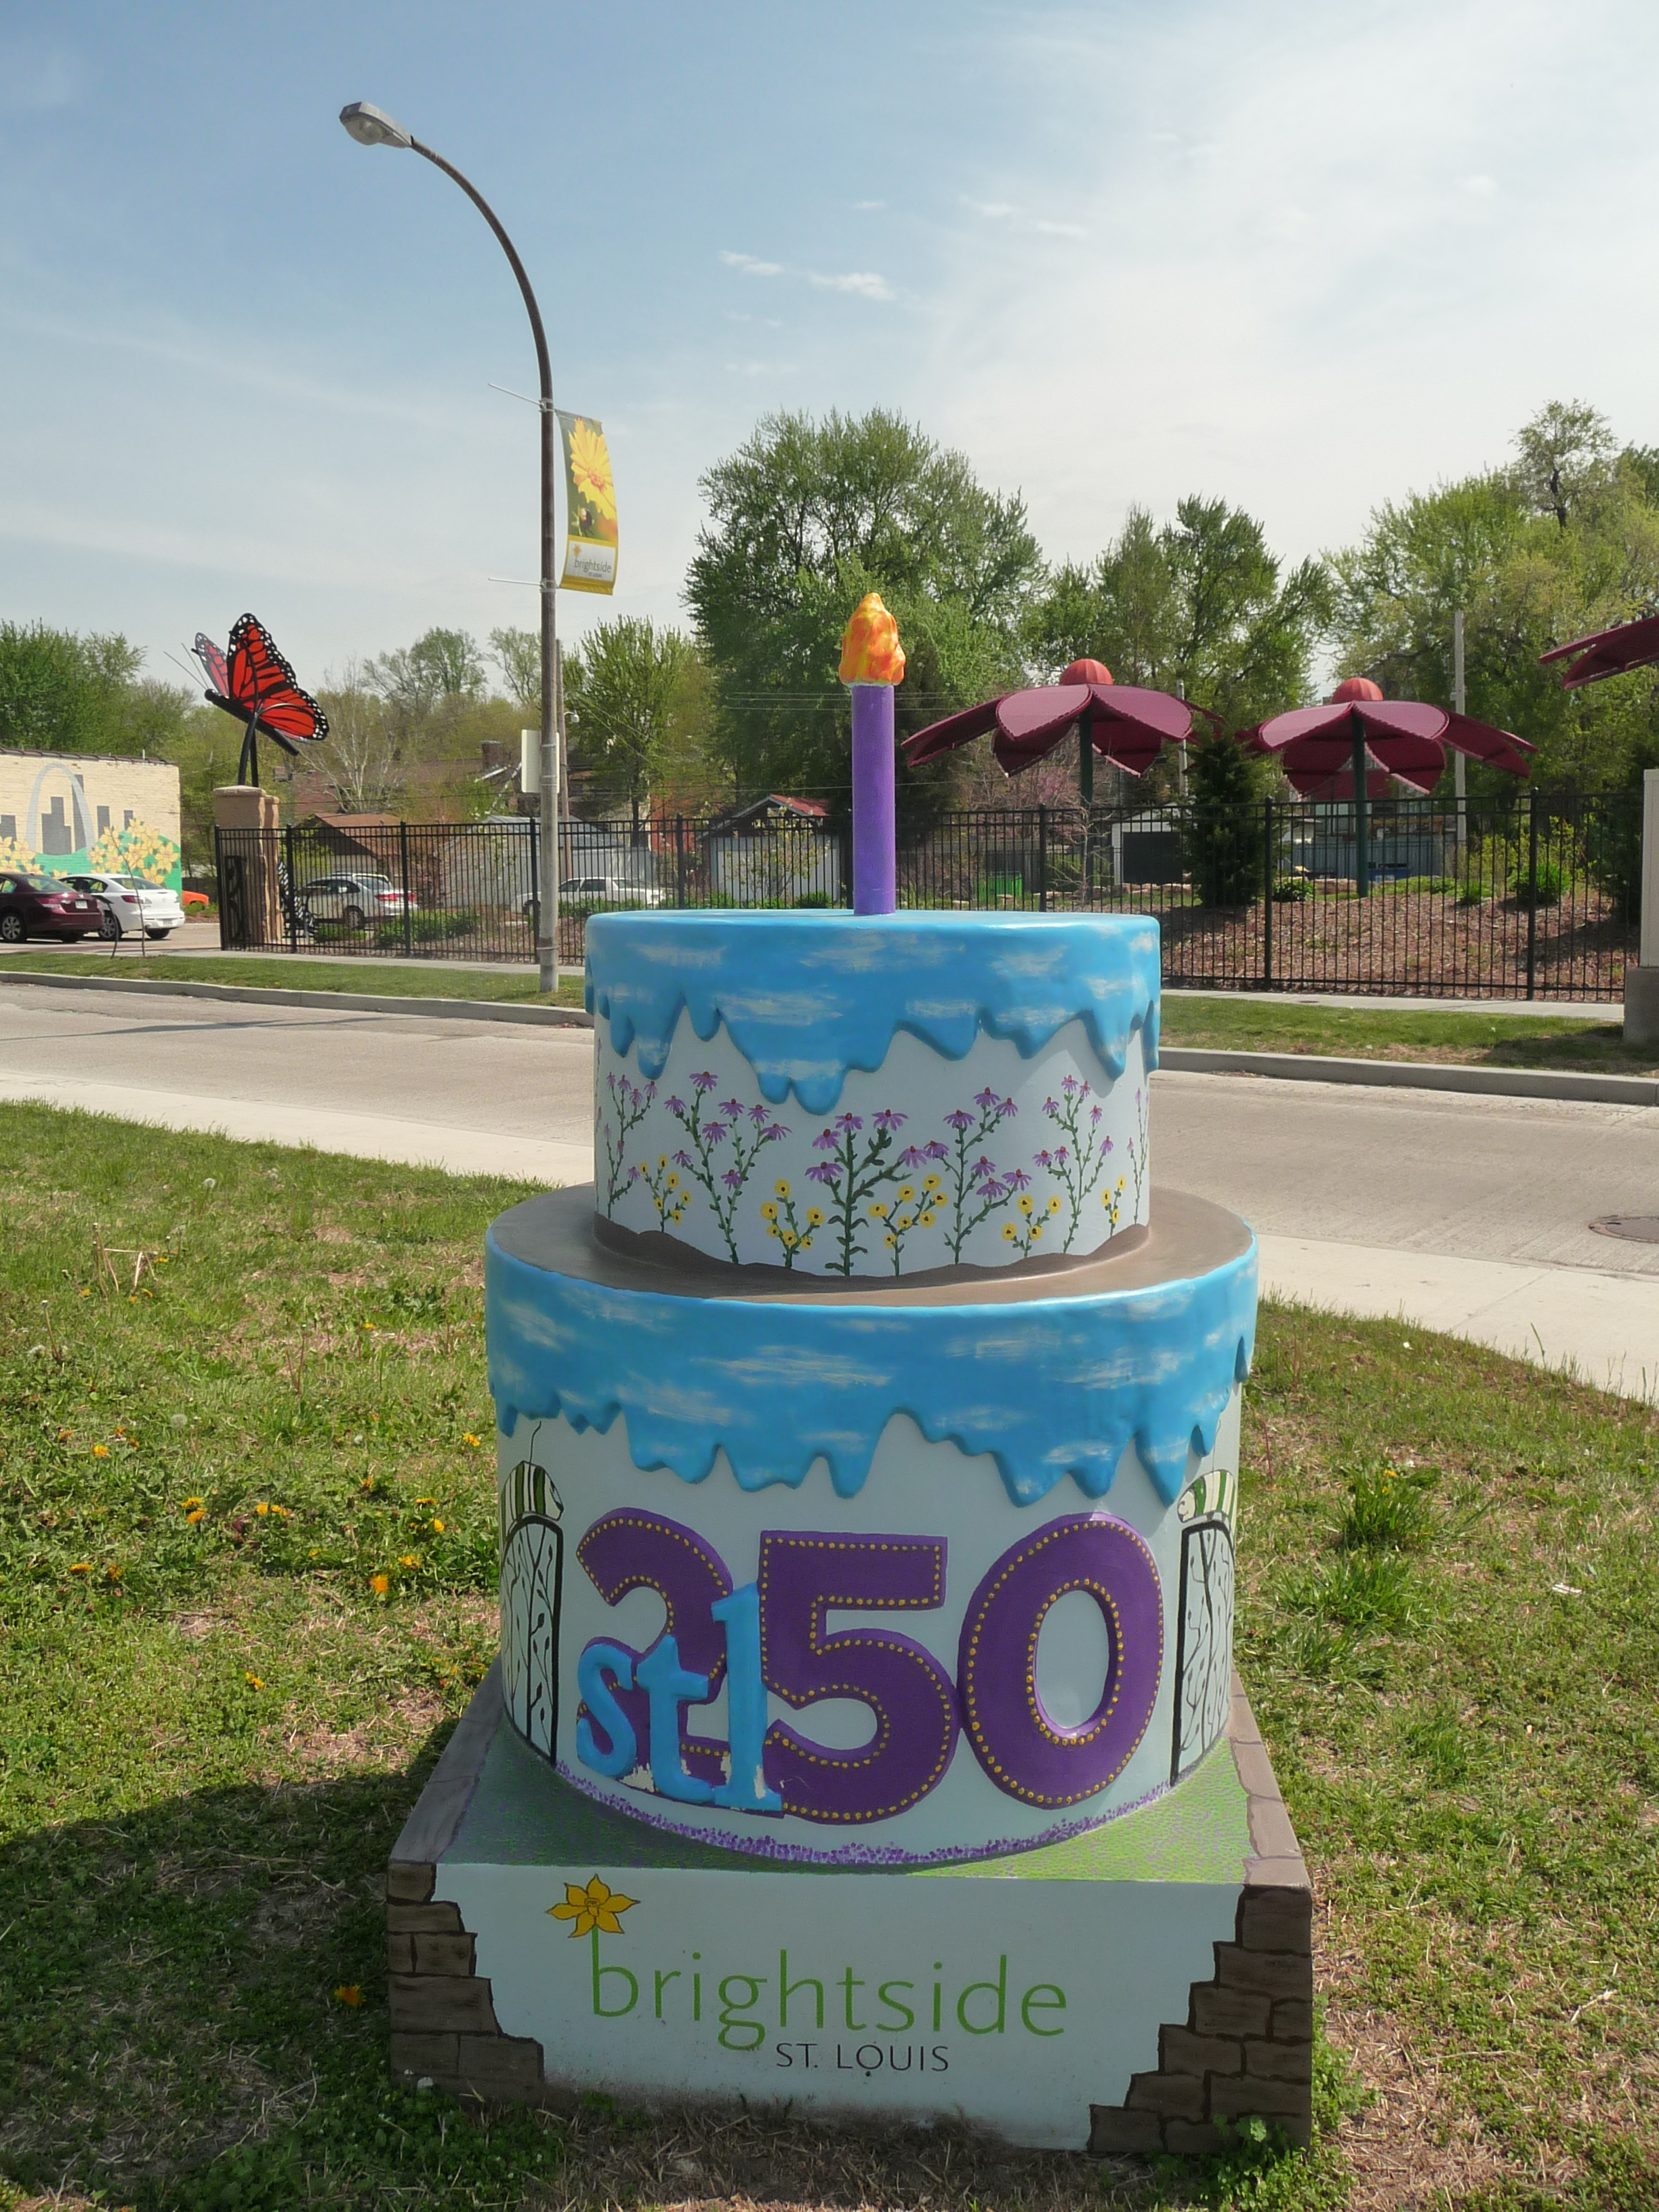 Peachy St Louis Turns 250 Brightside Celebrates With Cakeway To The West Personalised Birthday Cards Arneslily Jamesorg